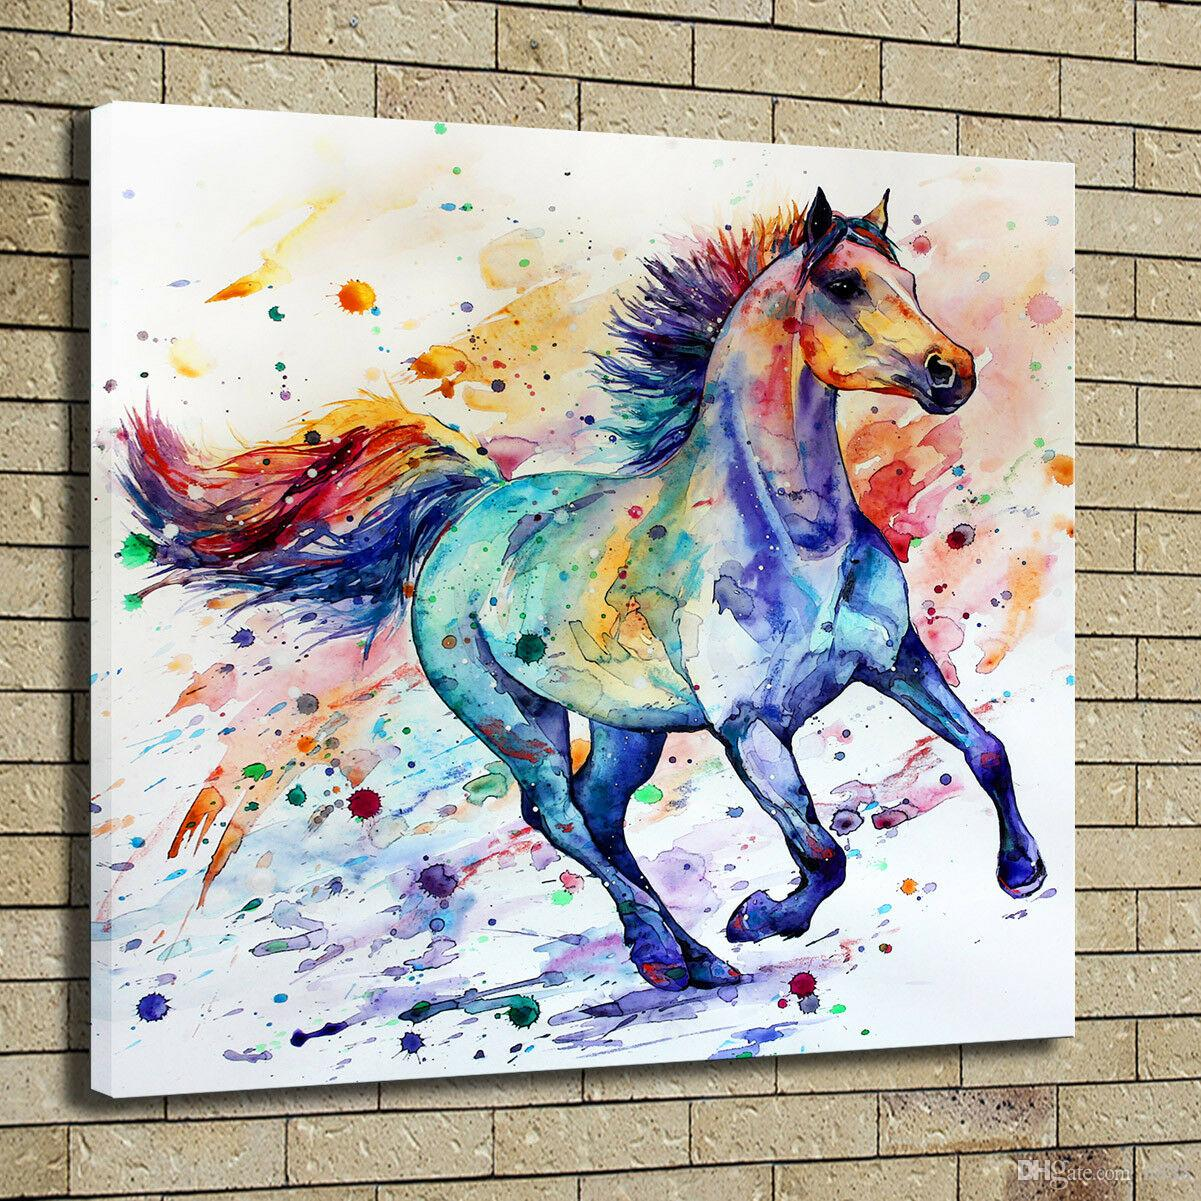 2020 Decor Art Running Horse Colorful Art Home Decor Handpainted Hd Print Oil Painting On Canvas Wall Art Canvas Pictures 191105 From N888 15 23 Dhgate Com